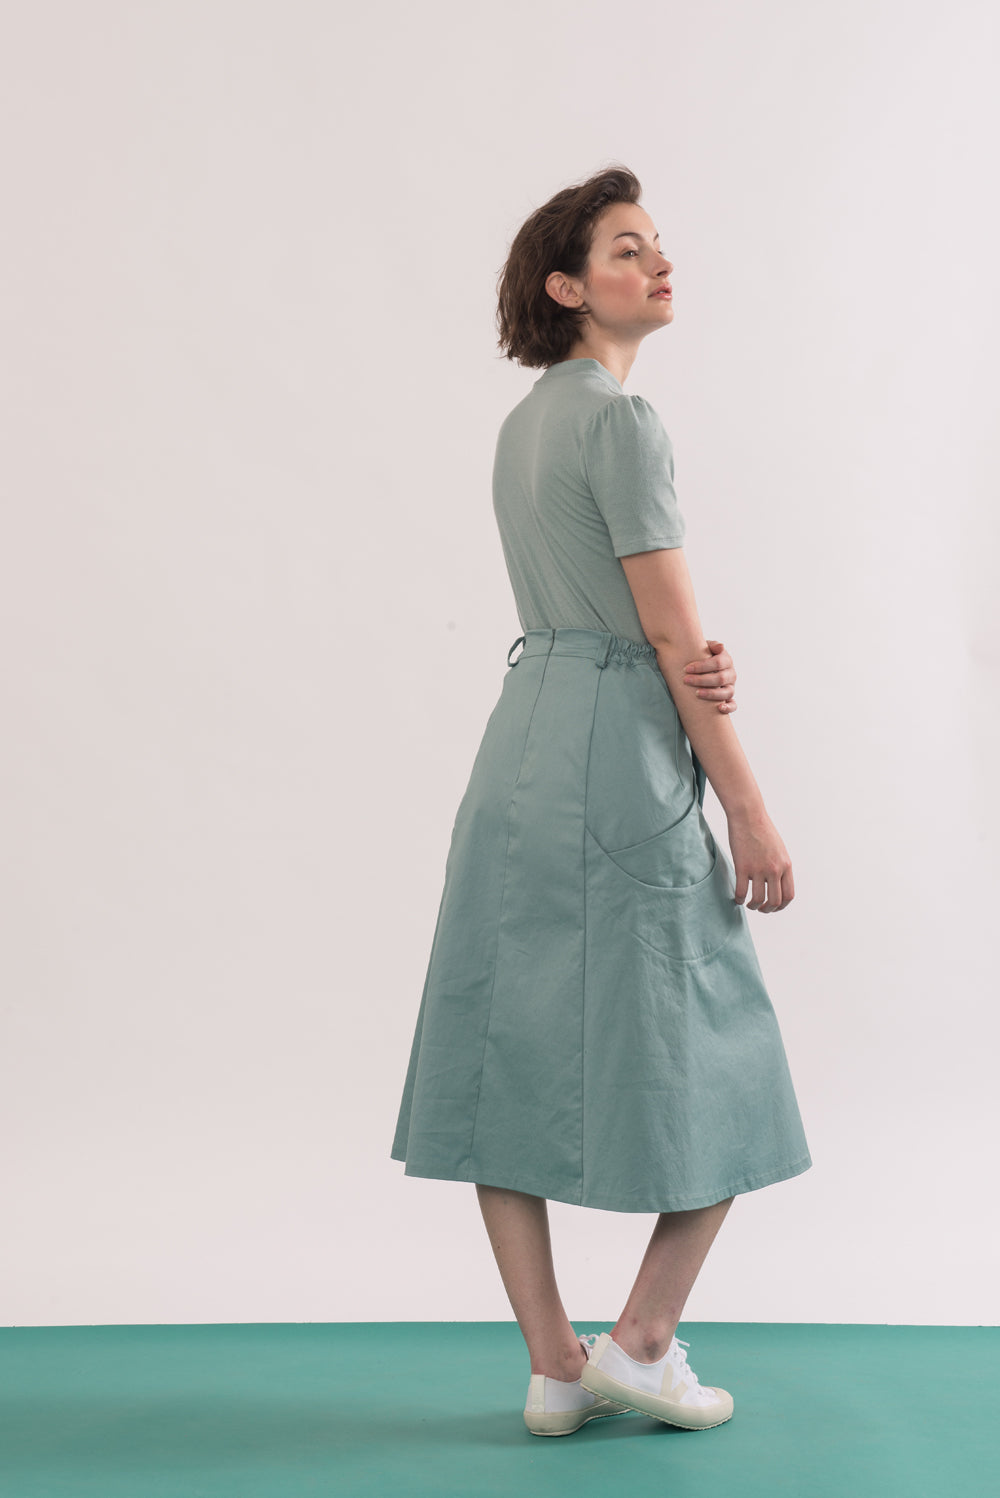 Abramovic Skirt by Jennifer Glasgow, Seafoam, back view, A-line skirt, midi length, origami pockets, organic cotton twill, eco fabric, OEKO-TEX certified Standard 100, sizes XS to XL, made in Montreal Canada